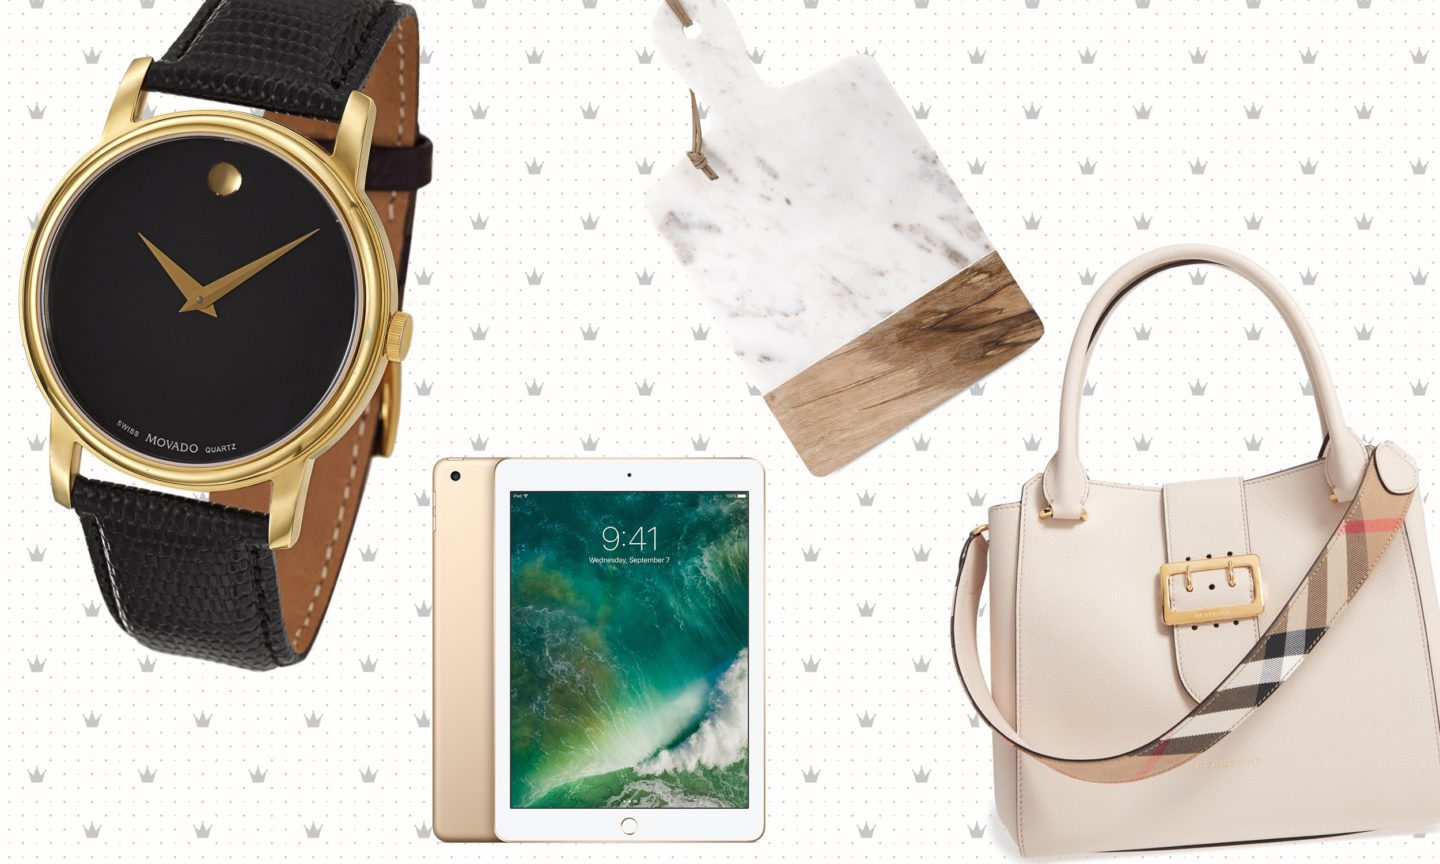 Top 10 Gifts For A 30th Birthday Collage Of Popular Products